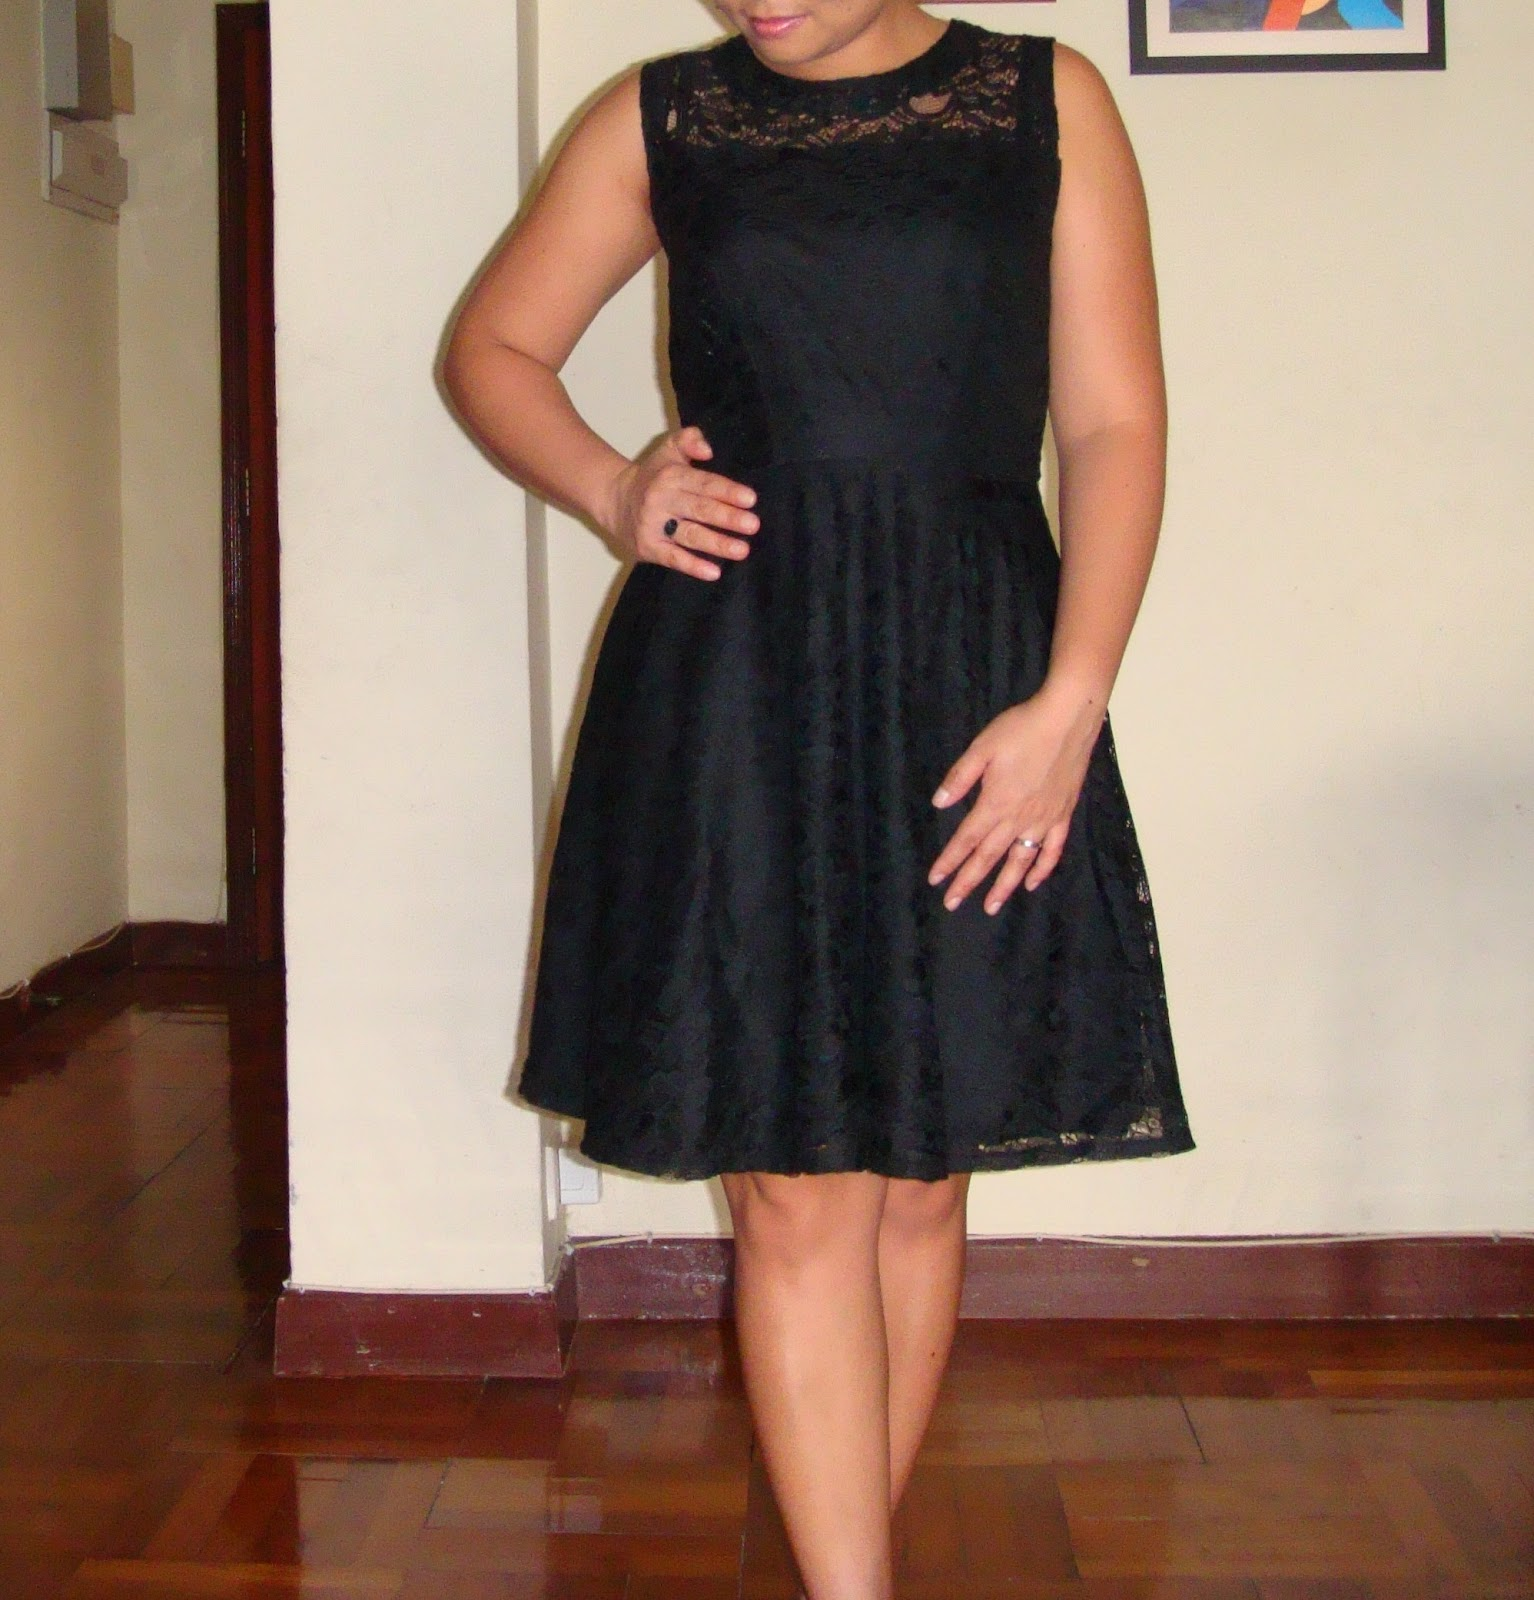 http://velvetribbonsew.blogspot.com/2012/06/black-lace-dress.html